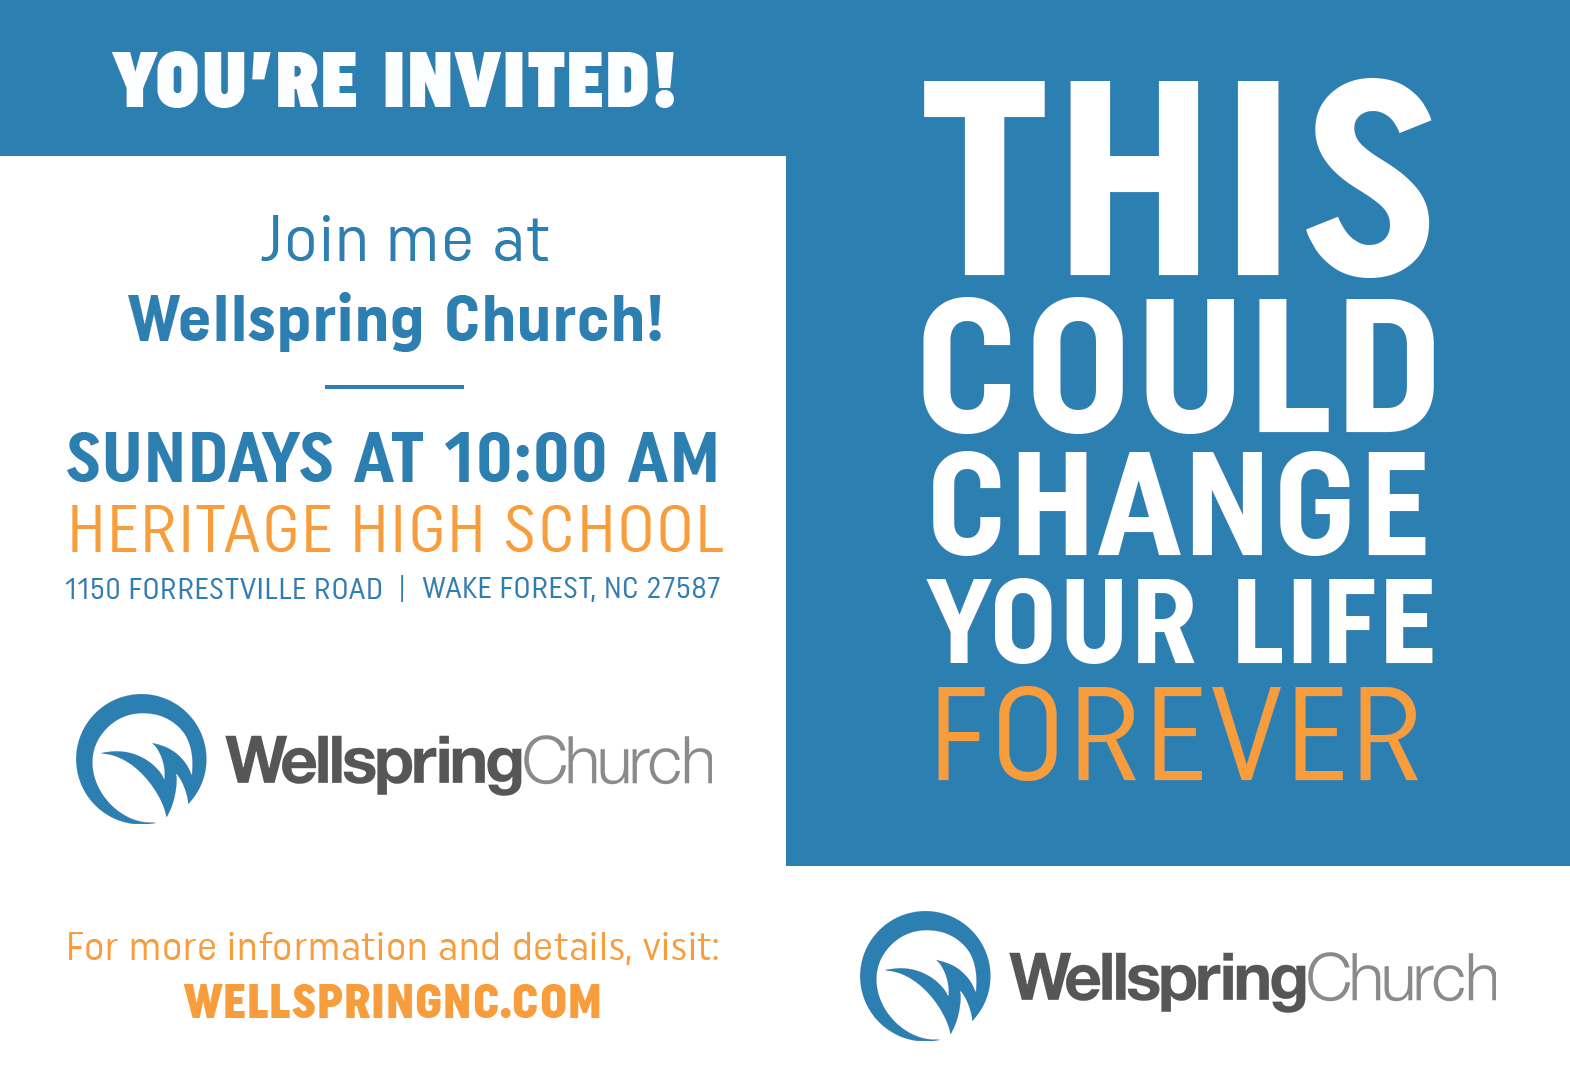 Church in Wake Forest NC, Church in Youngsville NC, Church in Heritage, Church in Rolesville NC, Heritage High School